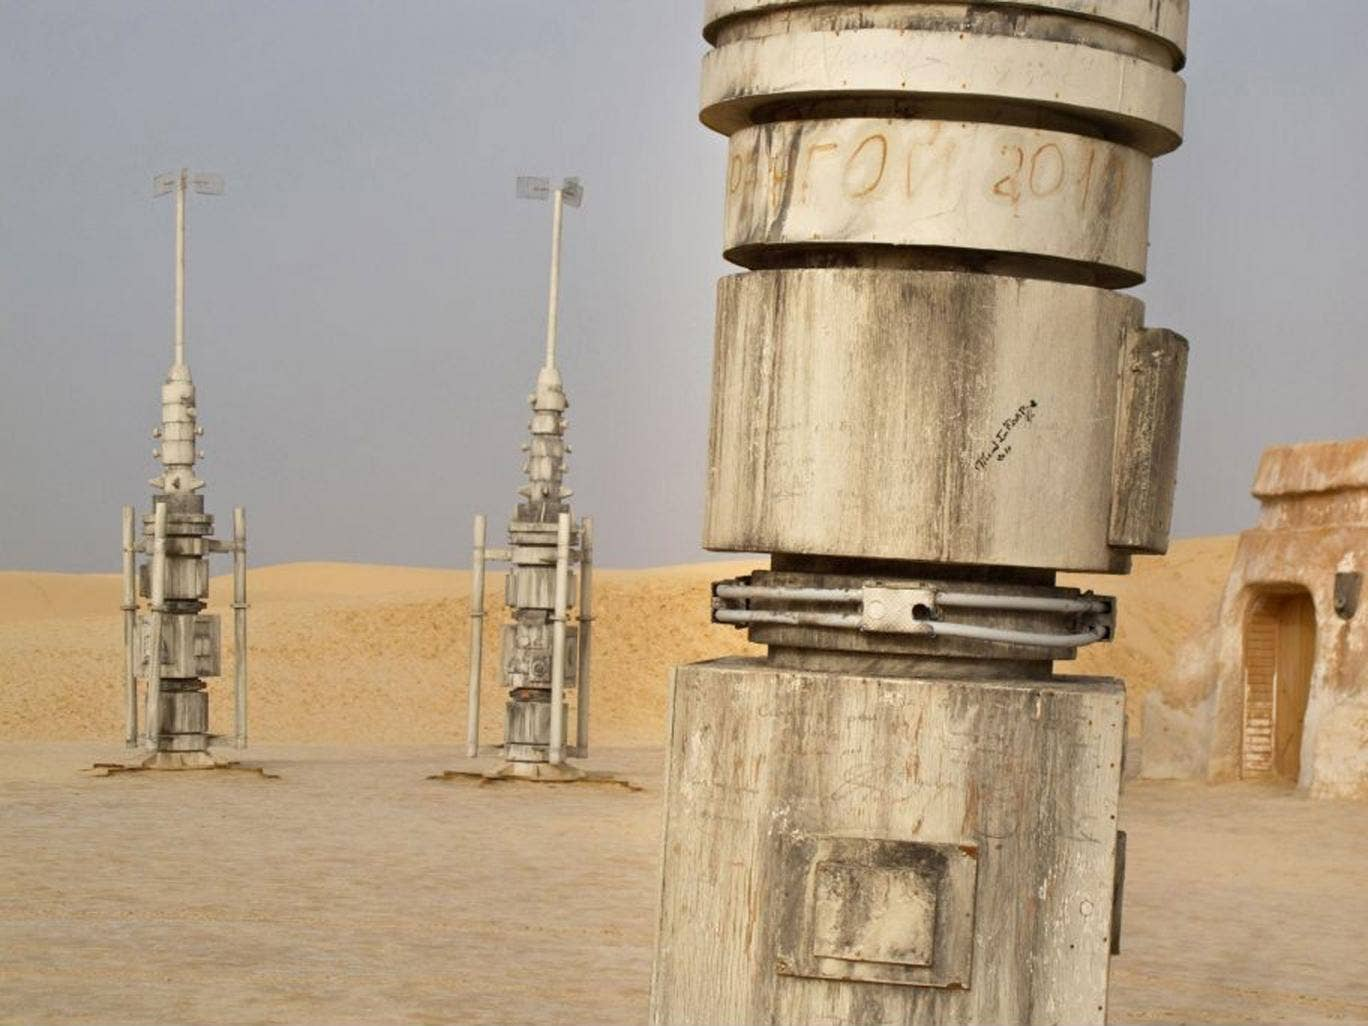 Bits of the Star Wars set were left on location and have long since gathered sand